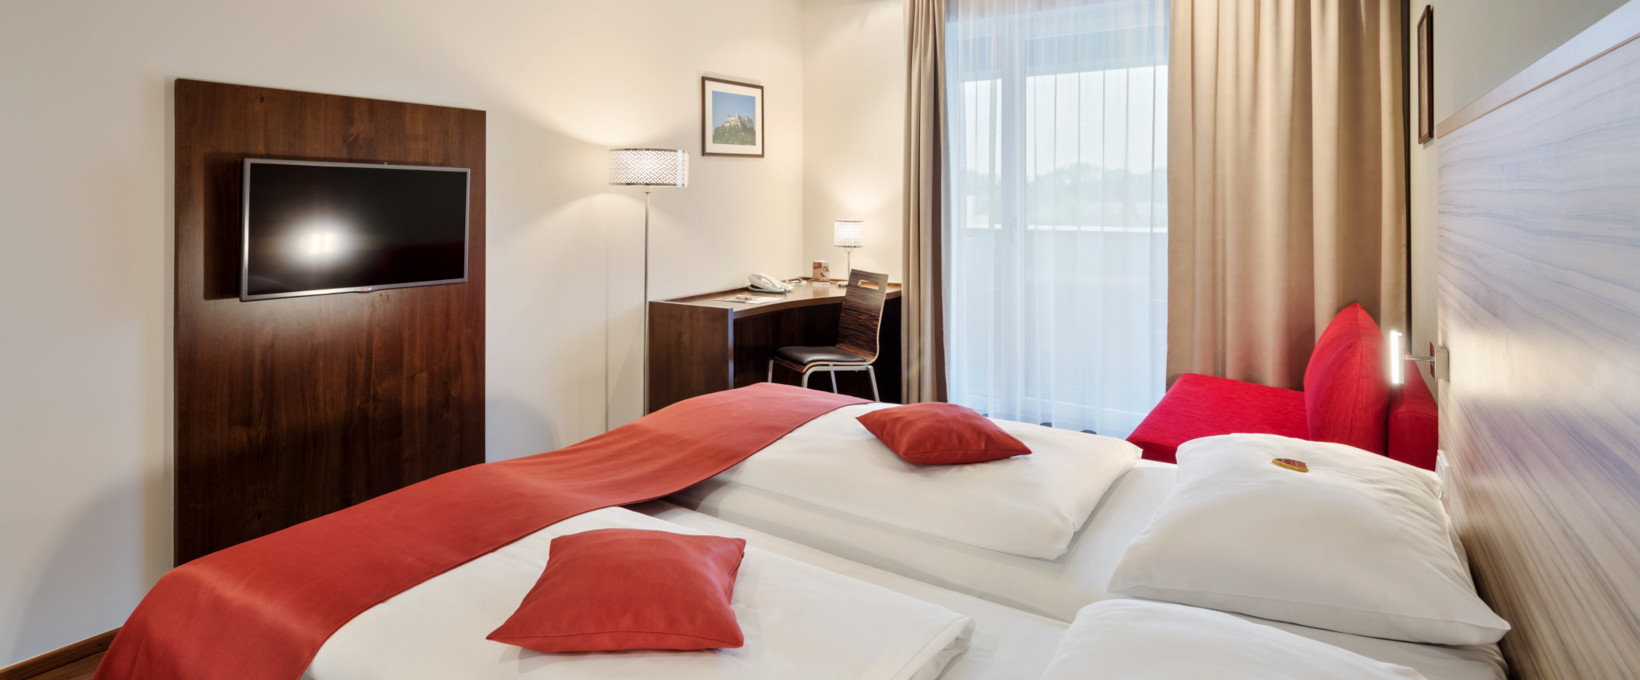 Executive Room with balcony | Hotel Salzburg Mitte